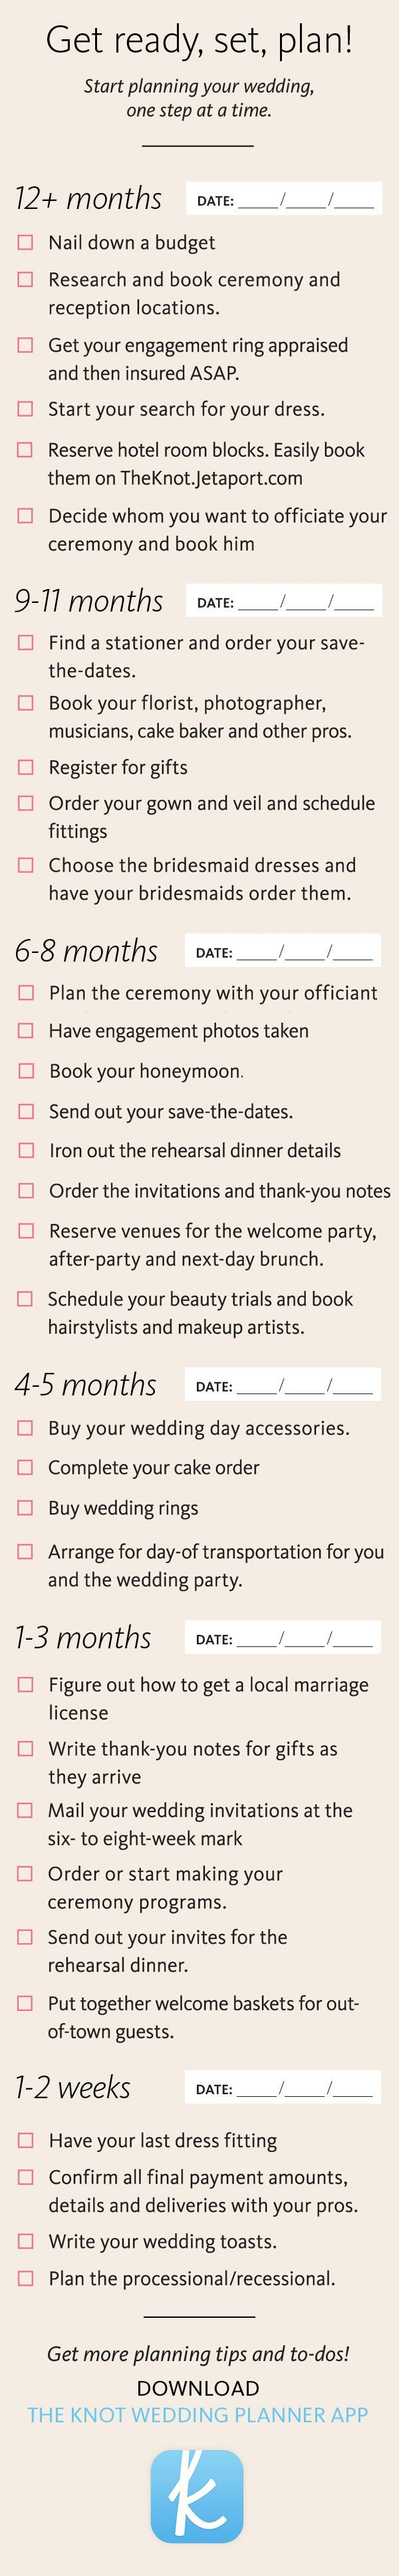 wedding planning apps best photos - wedding planning  - cuteweddingideas.com